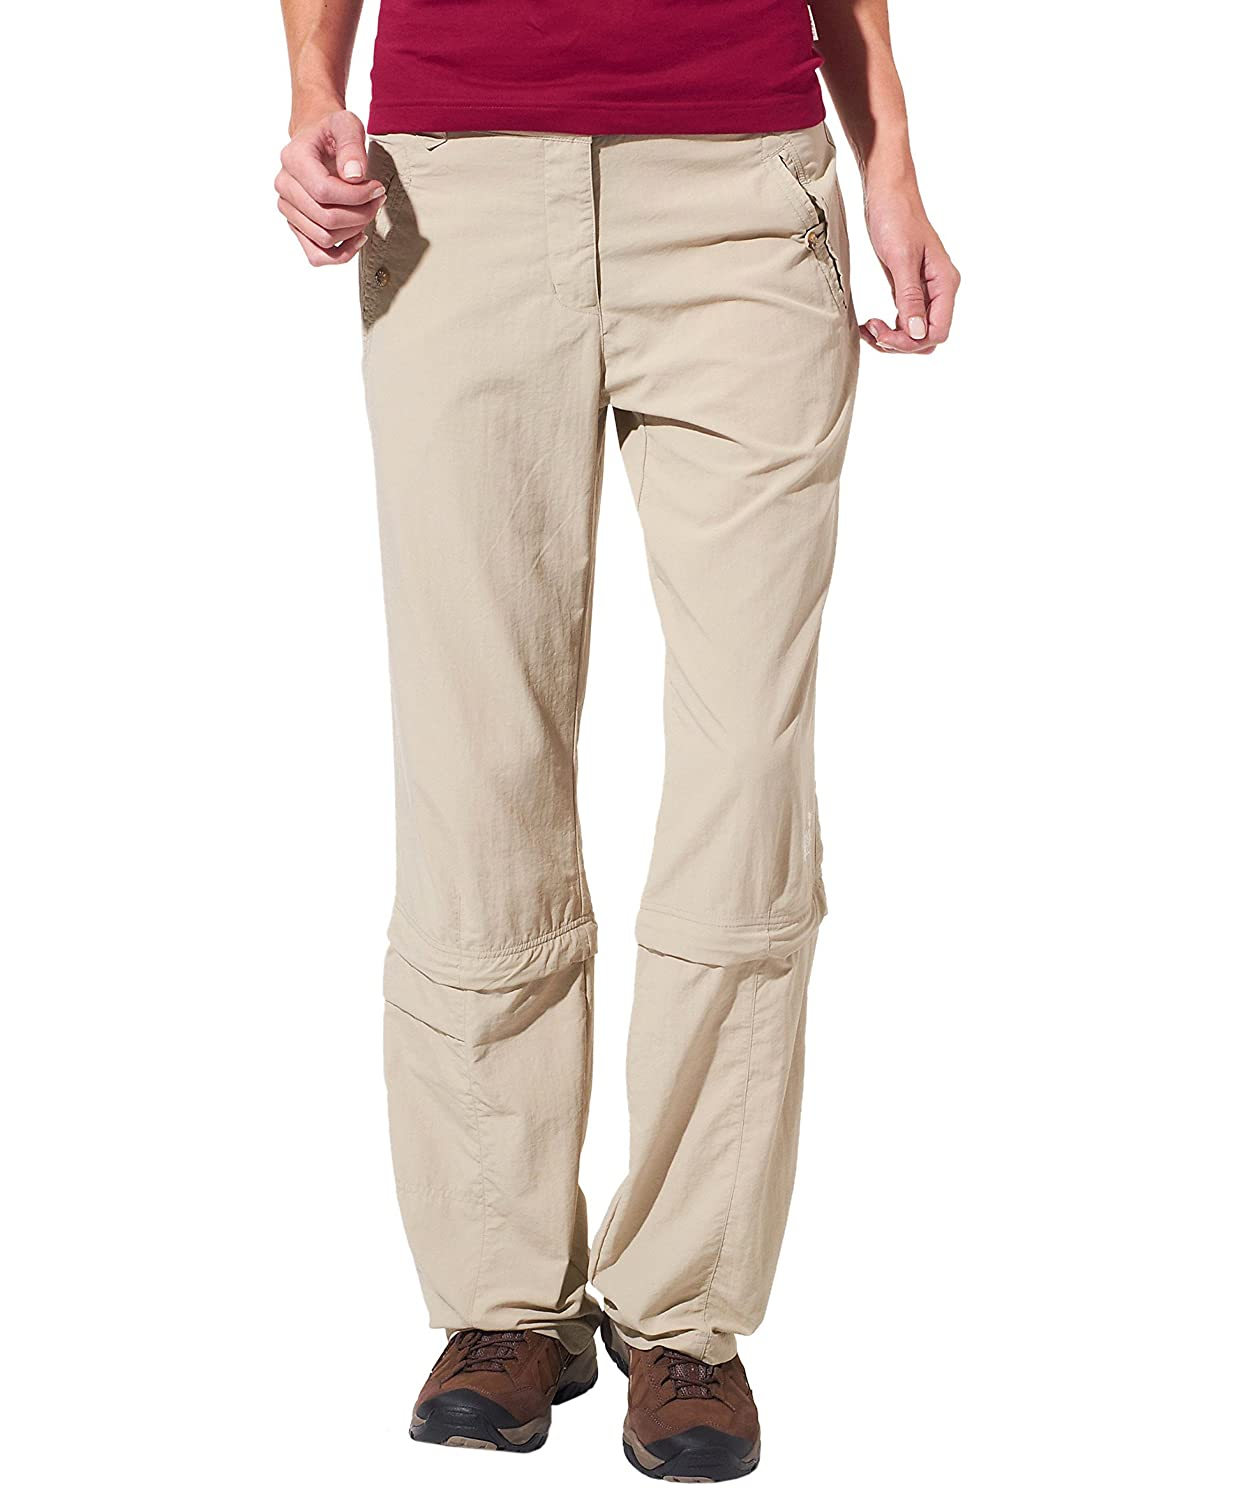 Jack Wolfskin LADAKH ZIP OFF PANTS WOMEN